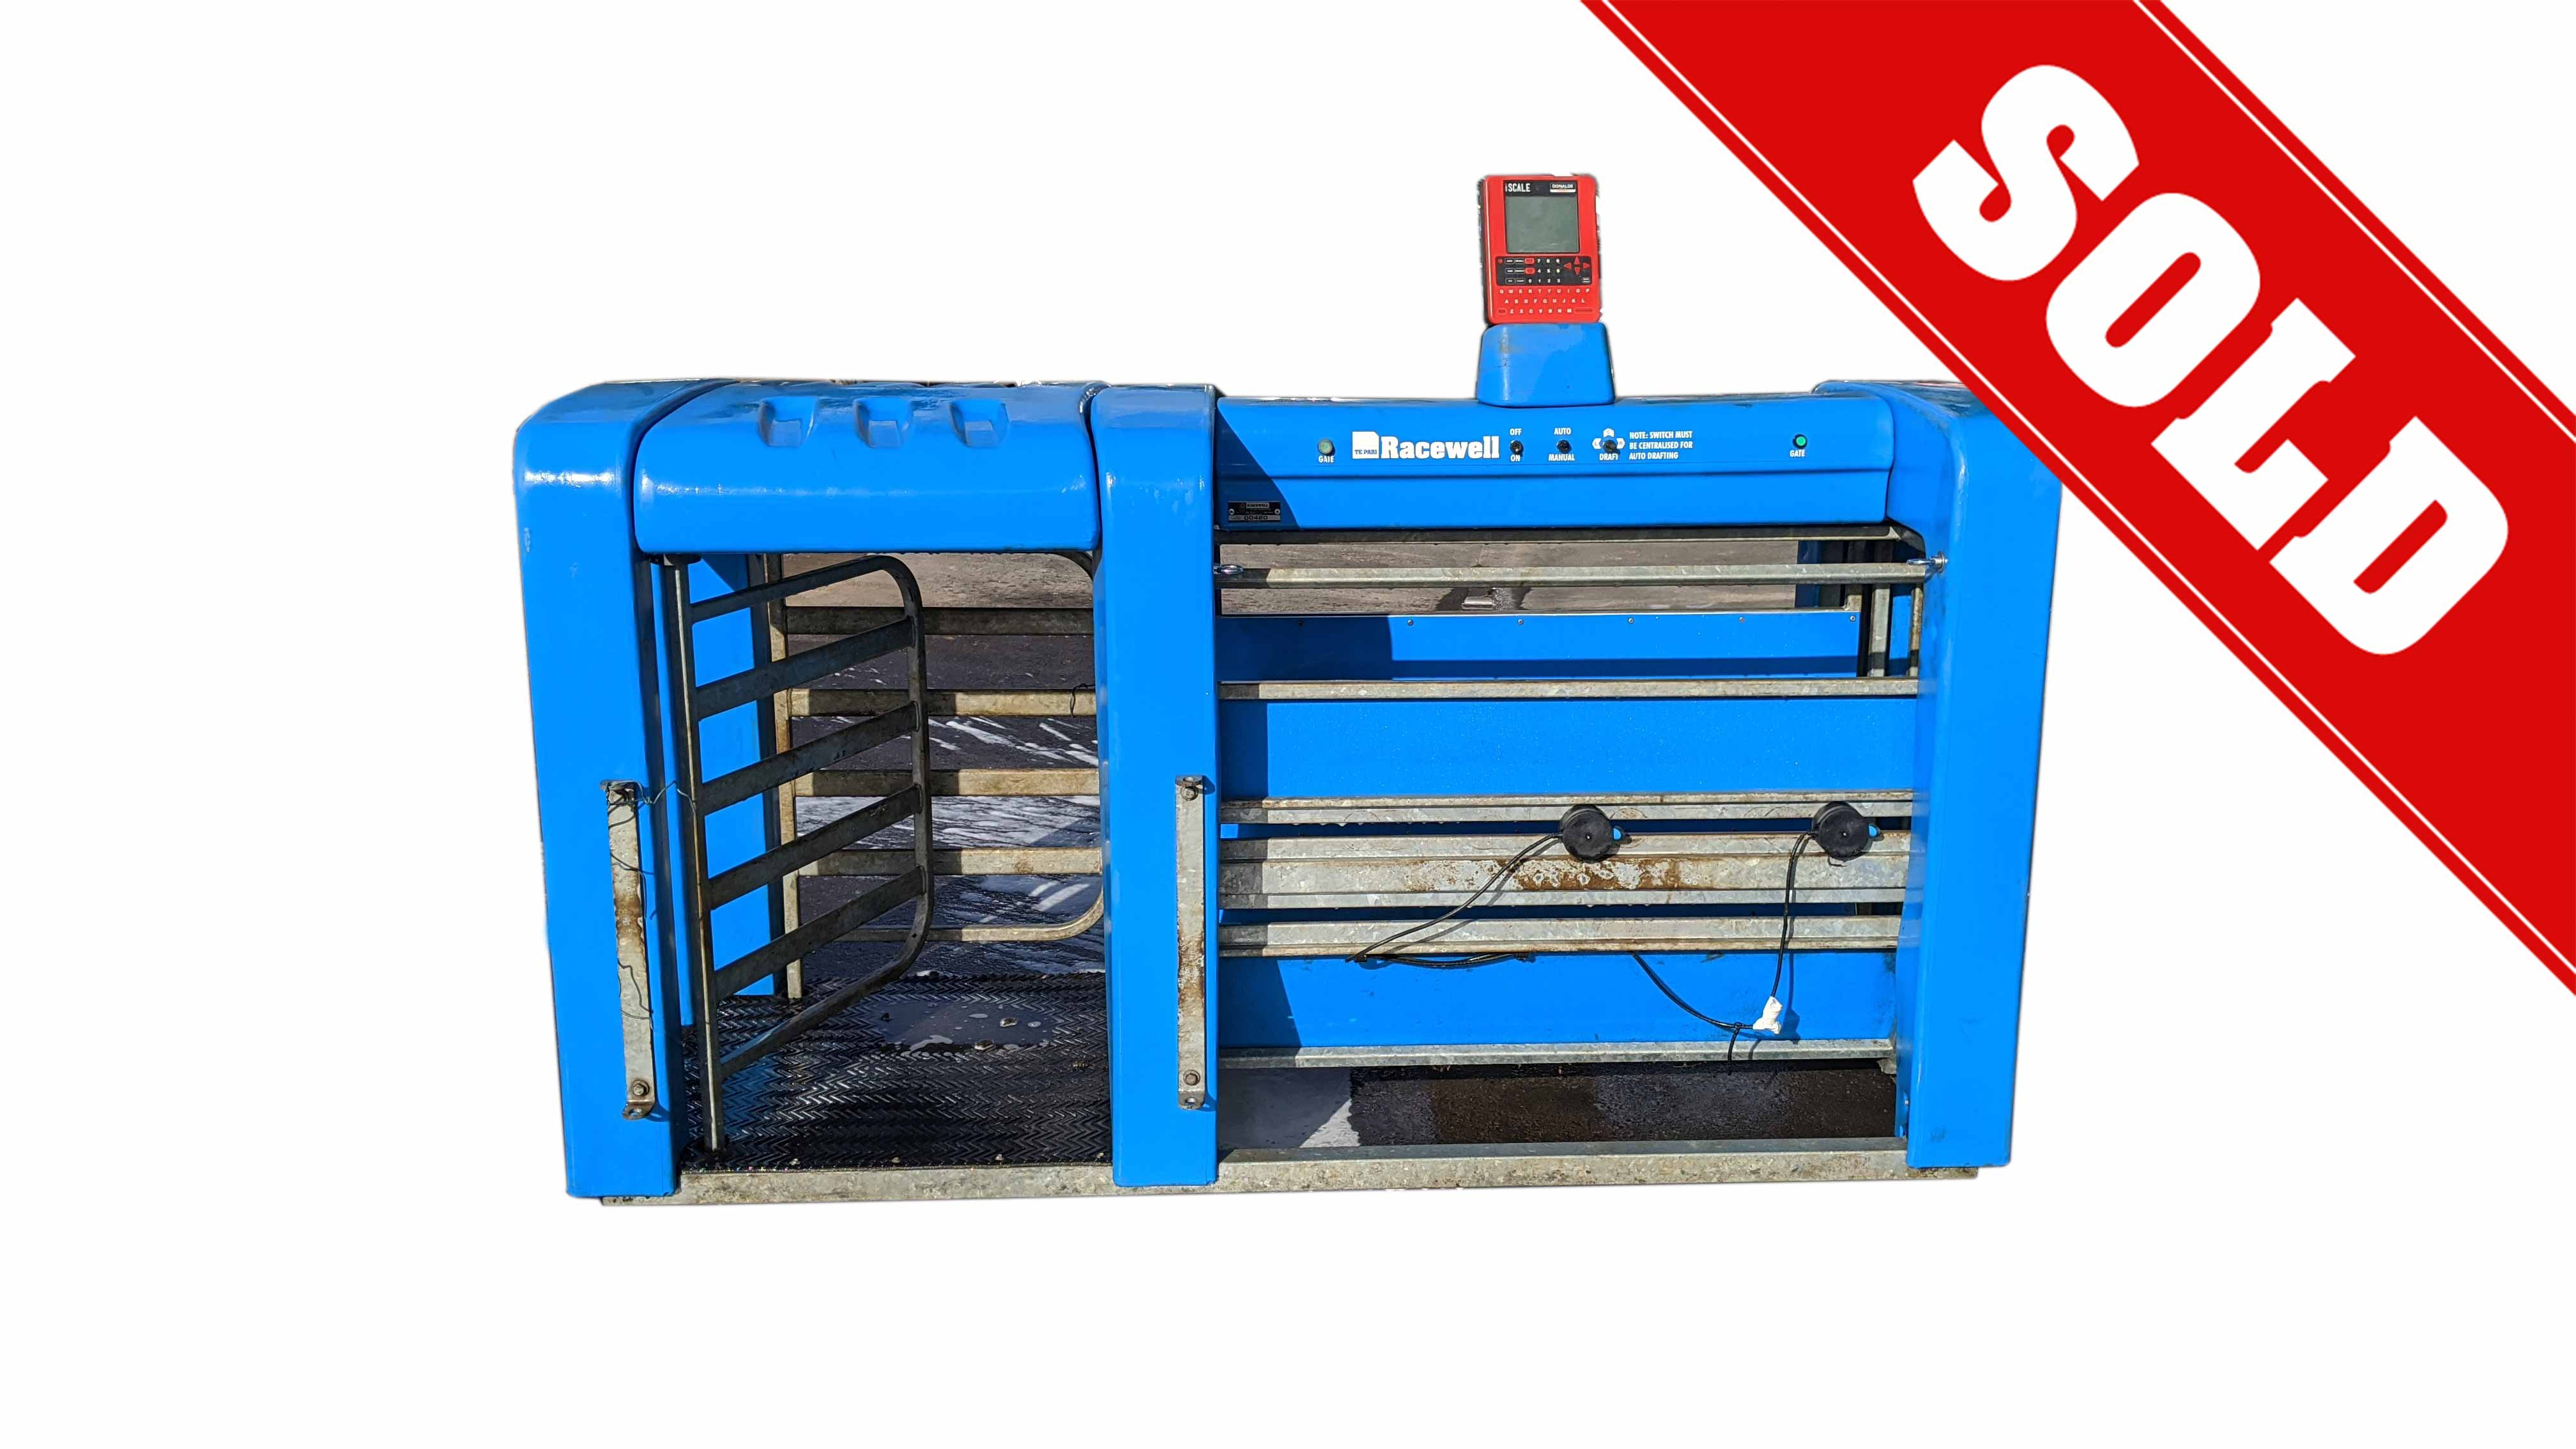 Used 3-Way Auto Sheep Drafter